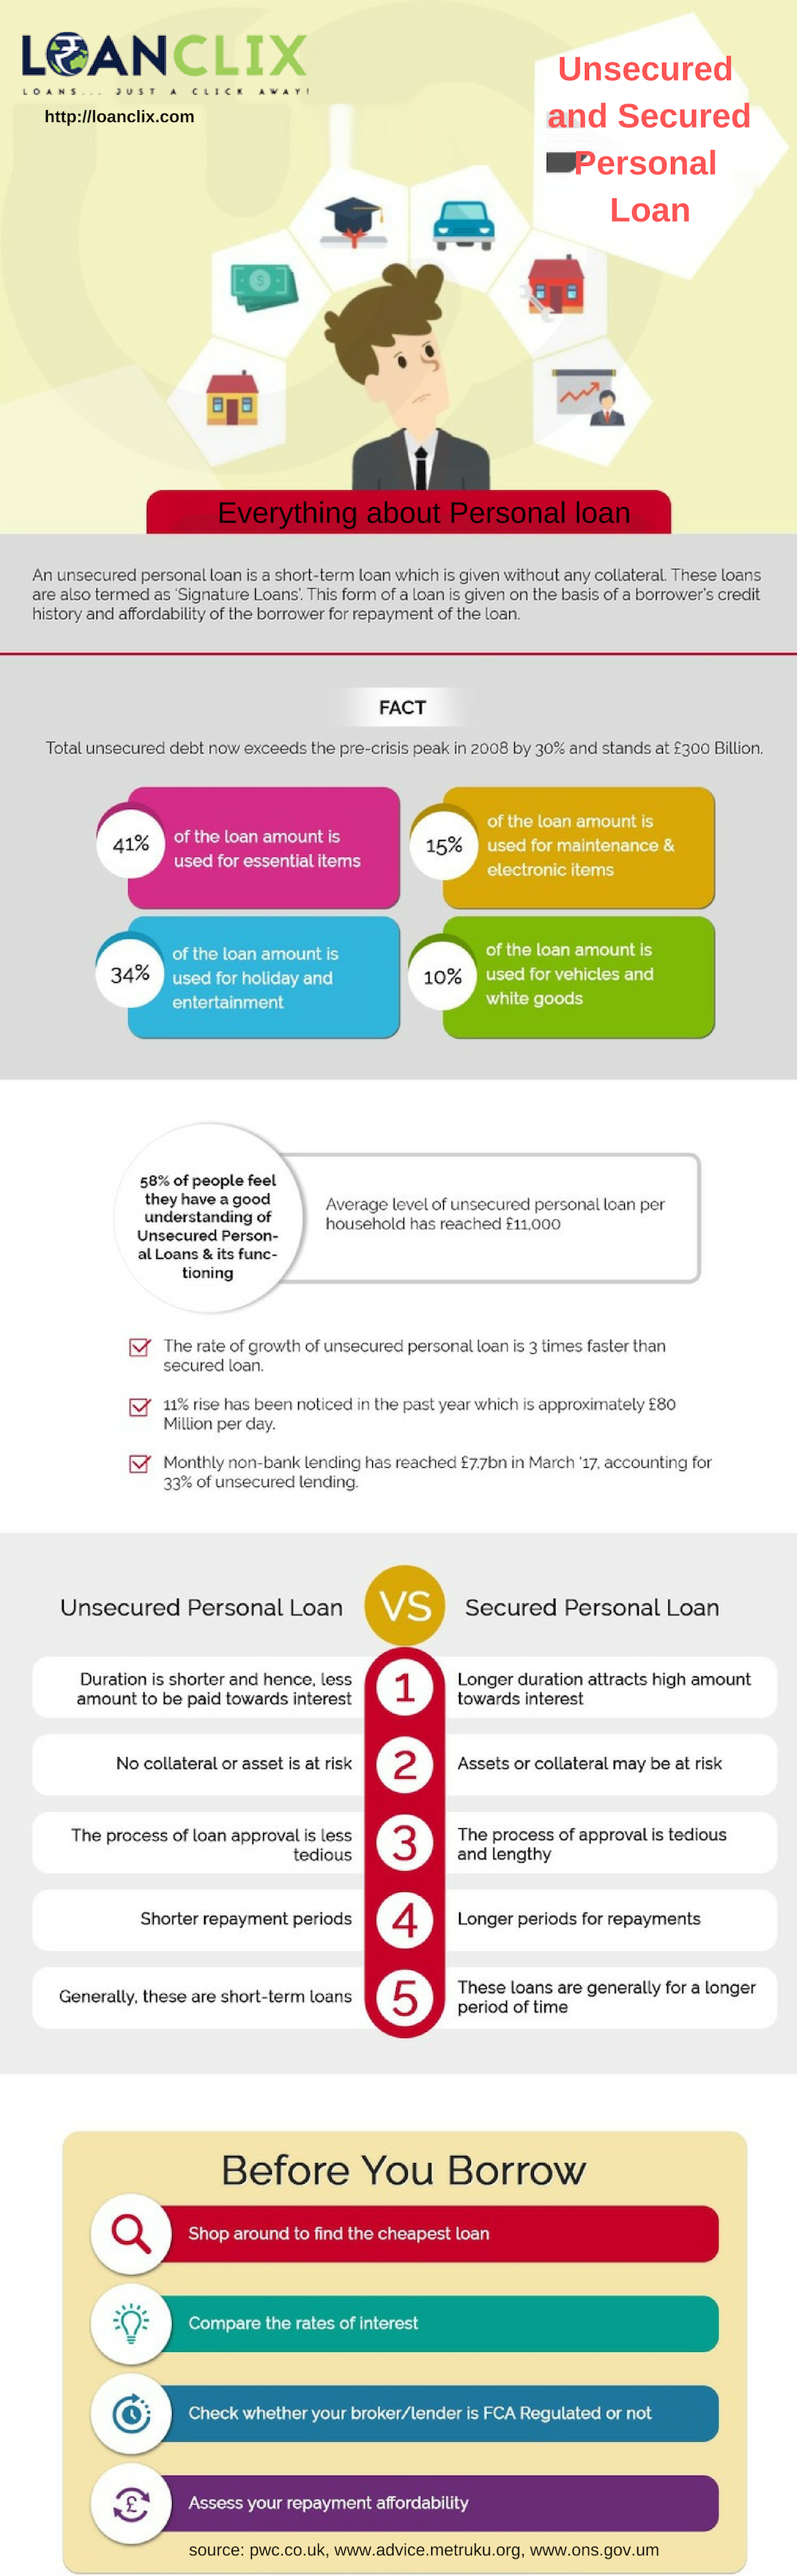 Some Facts About Unsecured And Secured Personal Loan Personal Loans Bad Credit Personal Loans Loans For Bad Credit